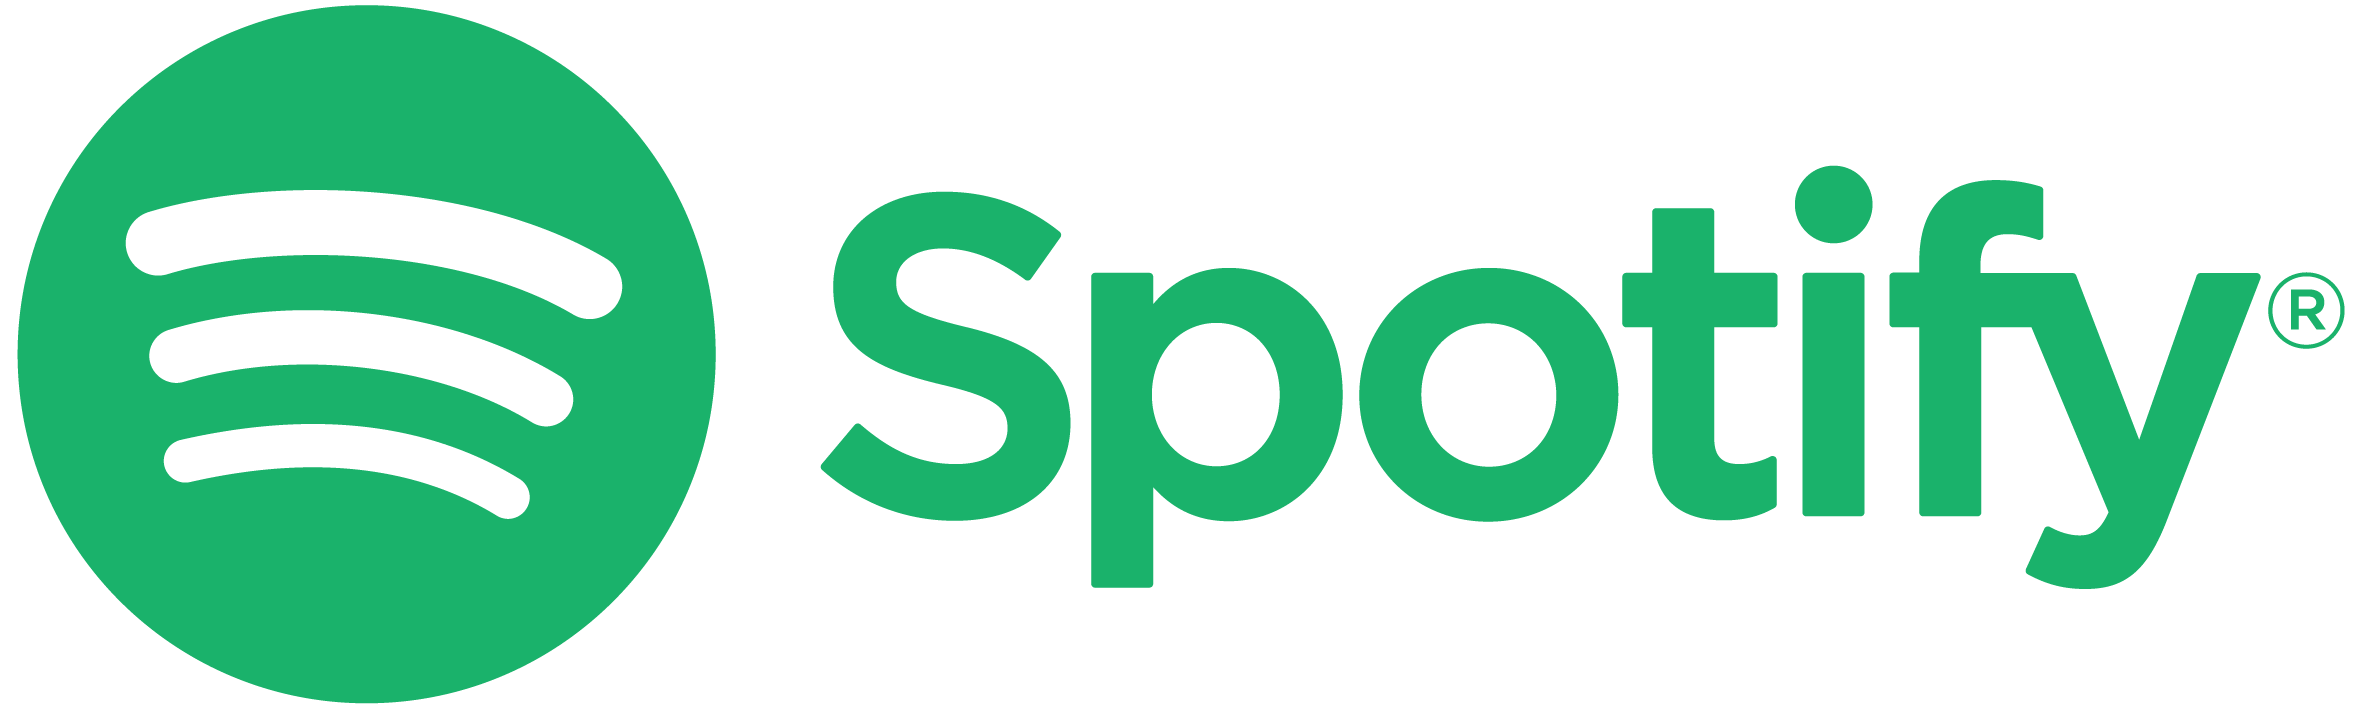 Spotify — Logo and Brand Assets.